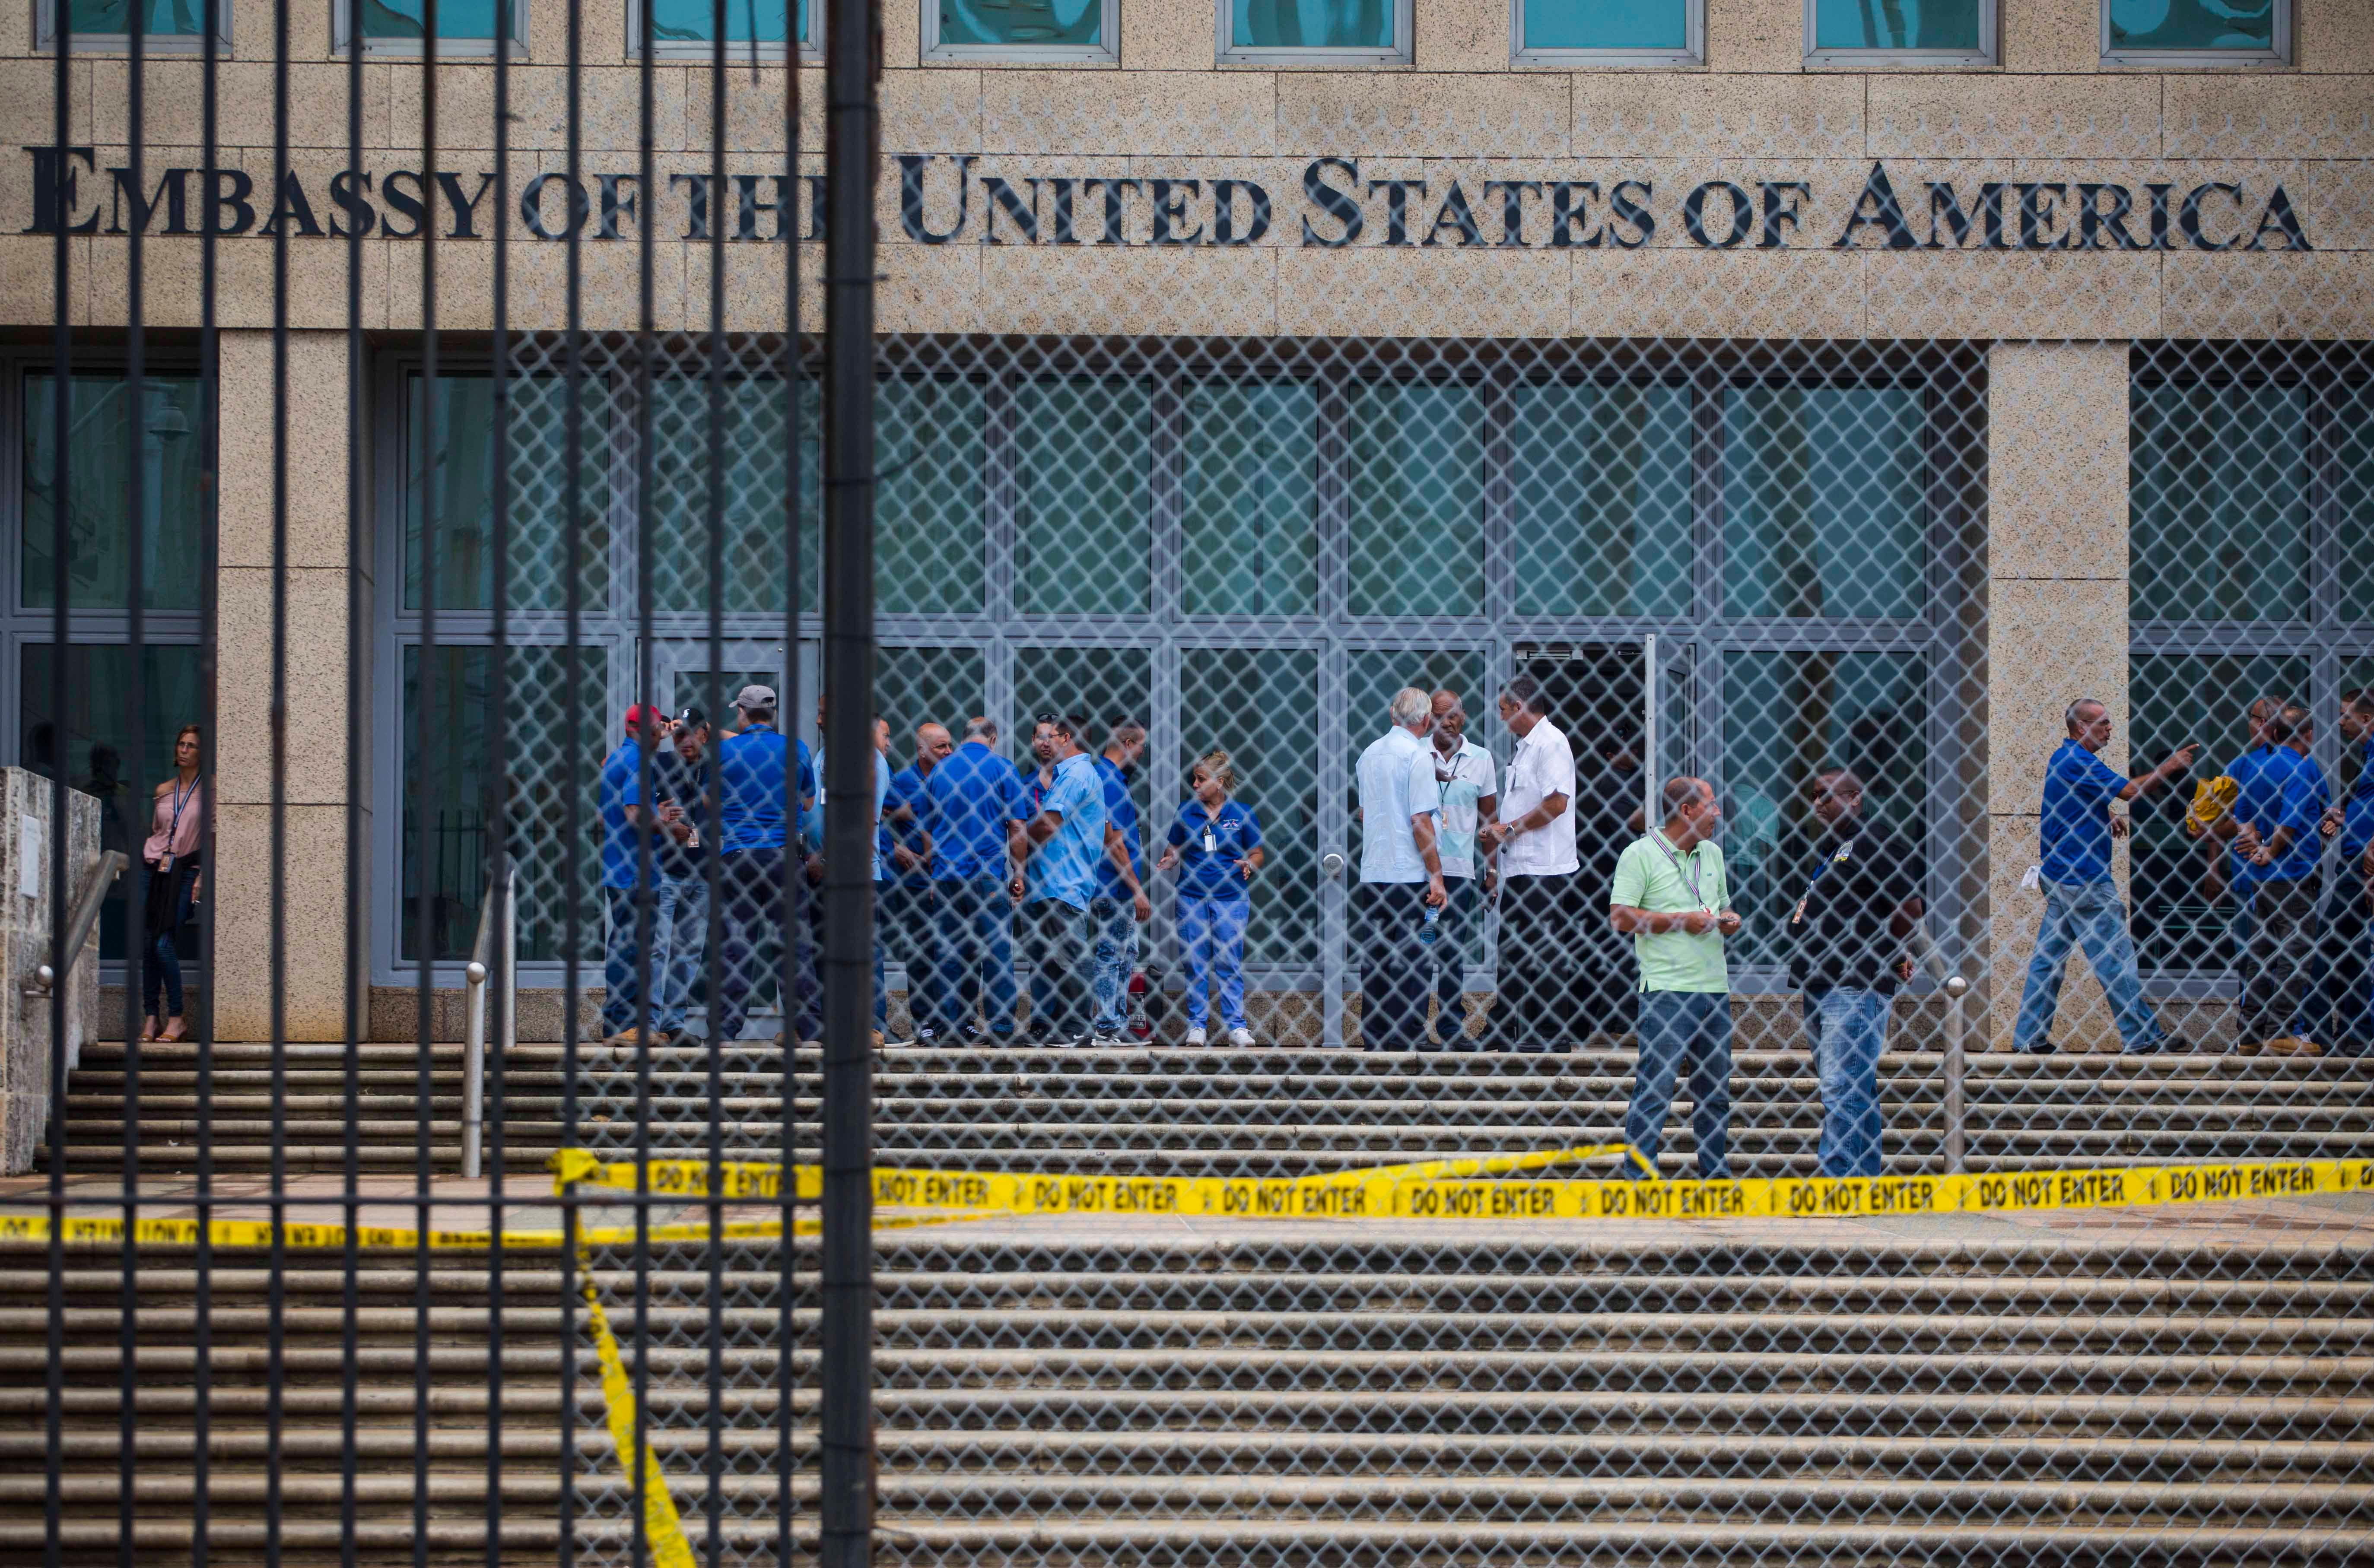 Staff stand within the United States embassy facility in Havana, Cuba, Friday, Sept. 29, 2017. The United States issued an ominous warning to Americans on Friday to stay away from Cuba and ordered home more than half the U.S. diplomatic corps. (AP Photo/Desmond Boylan)